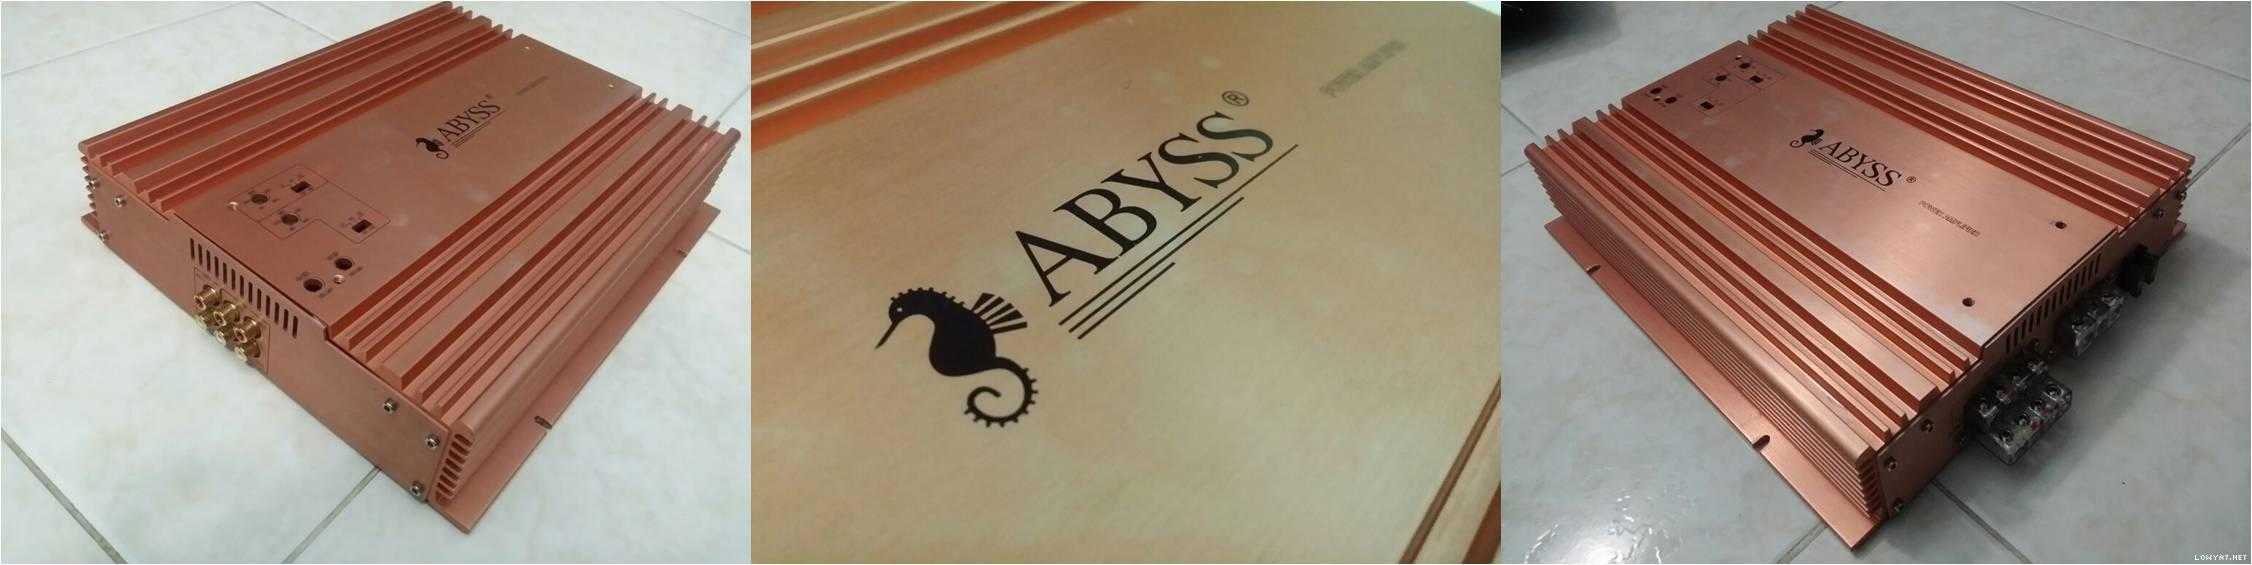 """[WTS] Abyss CT4.400 4-Ch Amplifier """"Dynamic SQ Amp (4 x 90W RMS)"""" Post-237488-1413338359"""